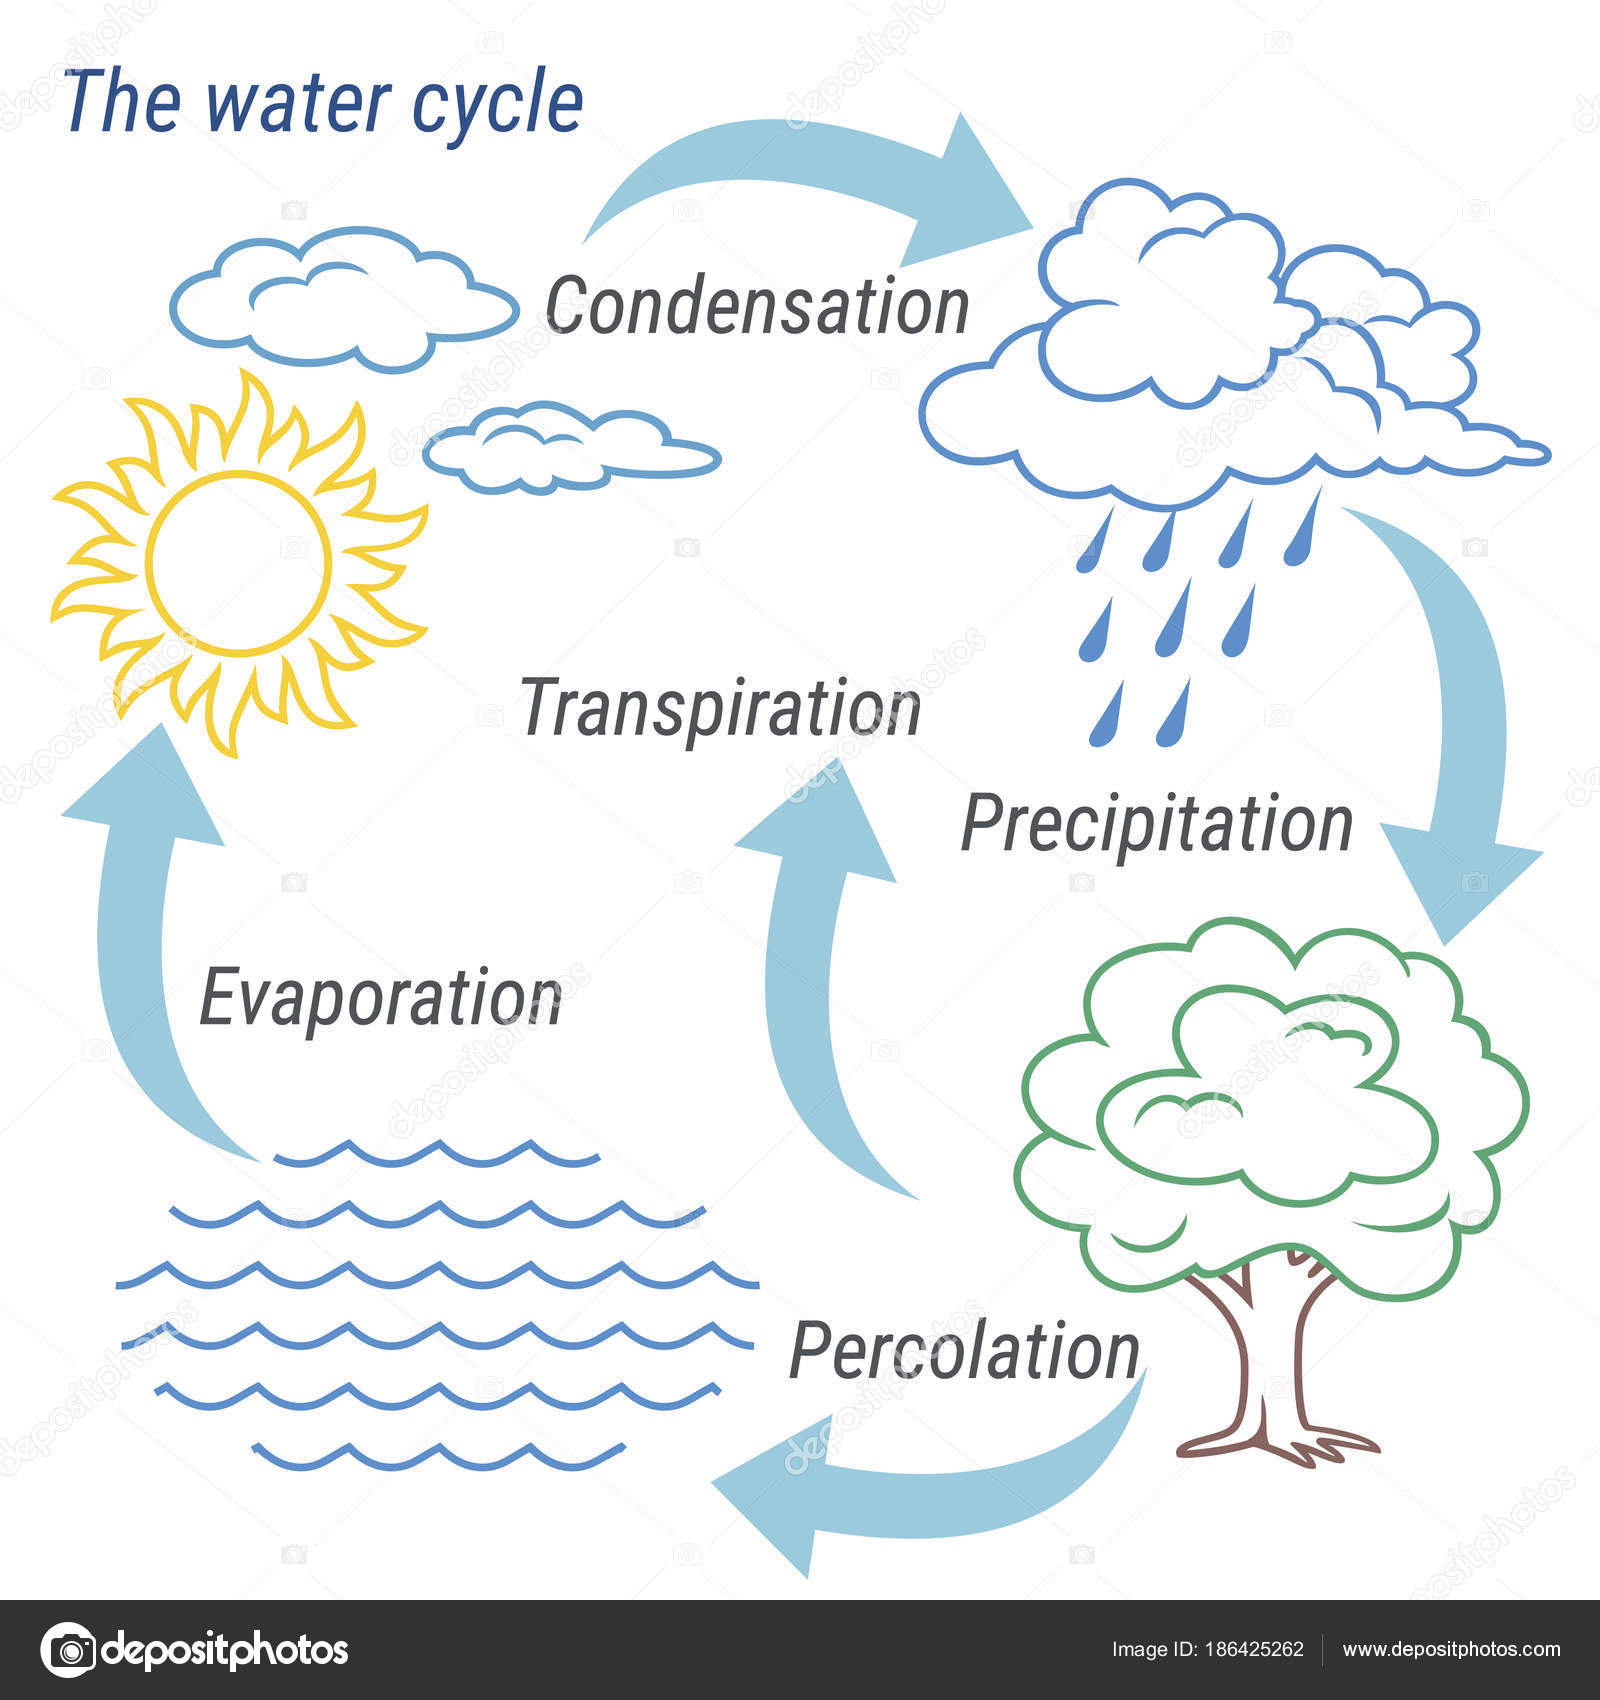 Water cycle line stock vector 3xy 186425262 vector schematic representation of the water cycle in nature illustration of diagram water cycle cycle water in nature environment vector by 3xy ccuart Gallery